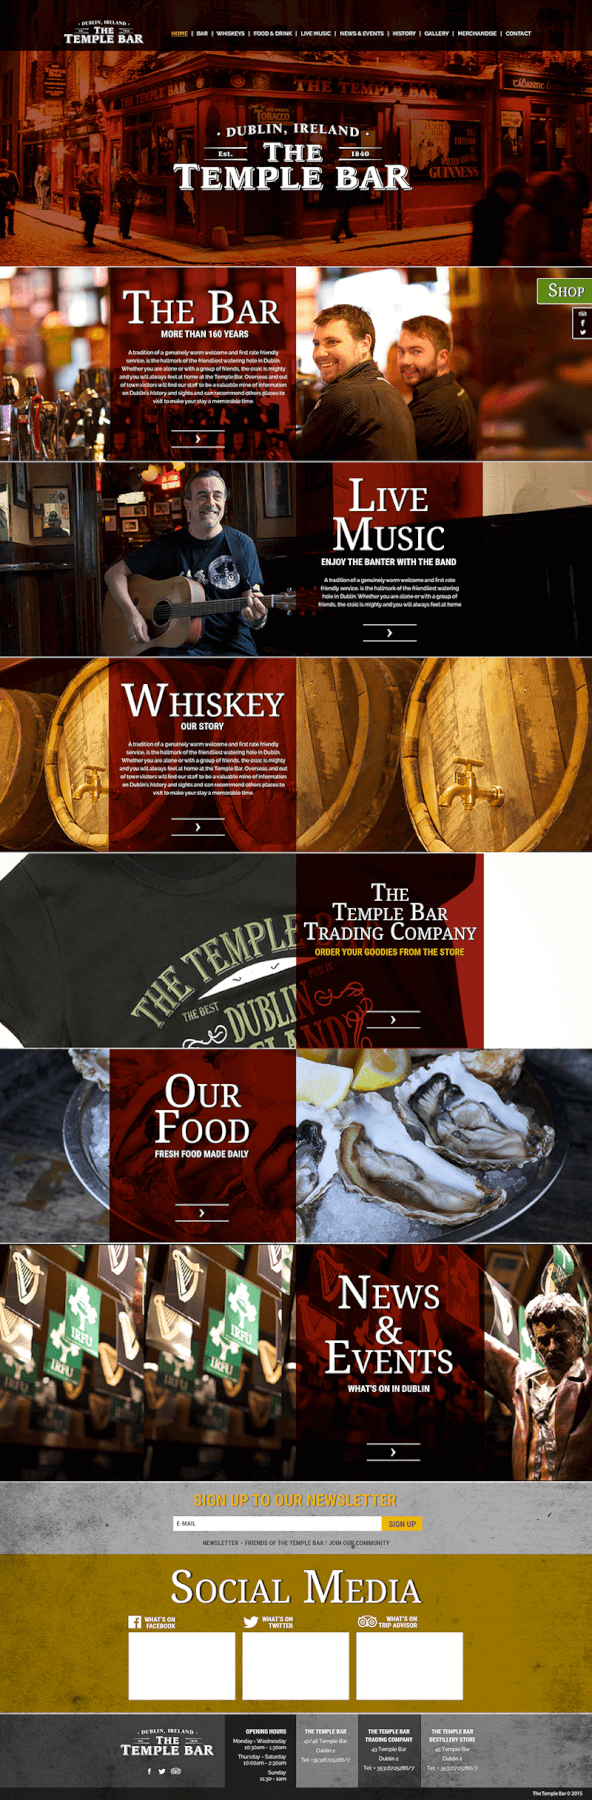 Temple Bar Pub website design